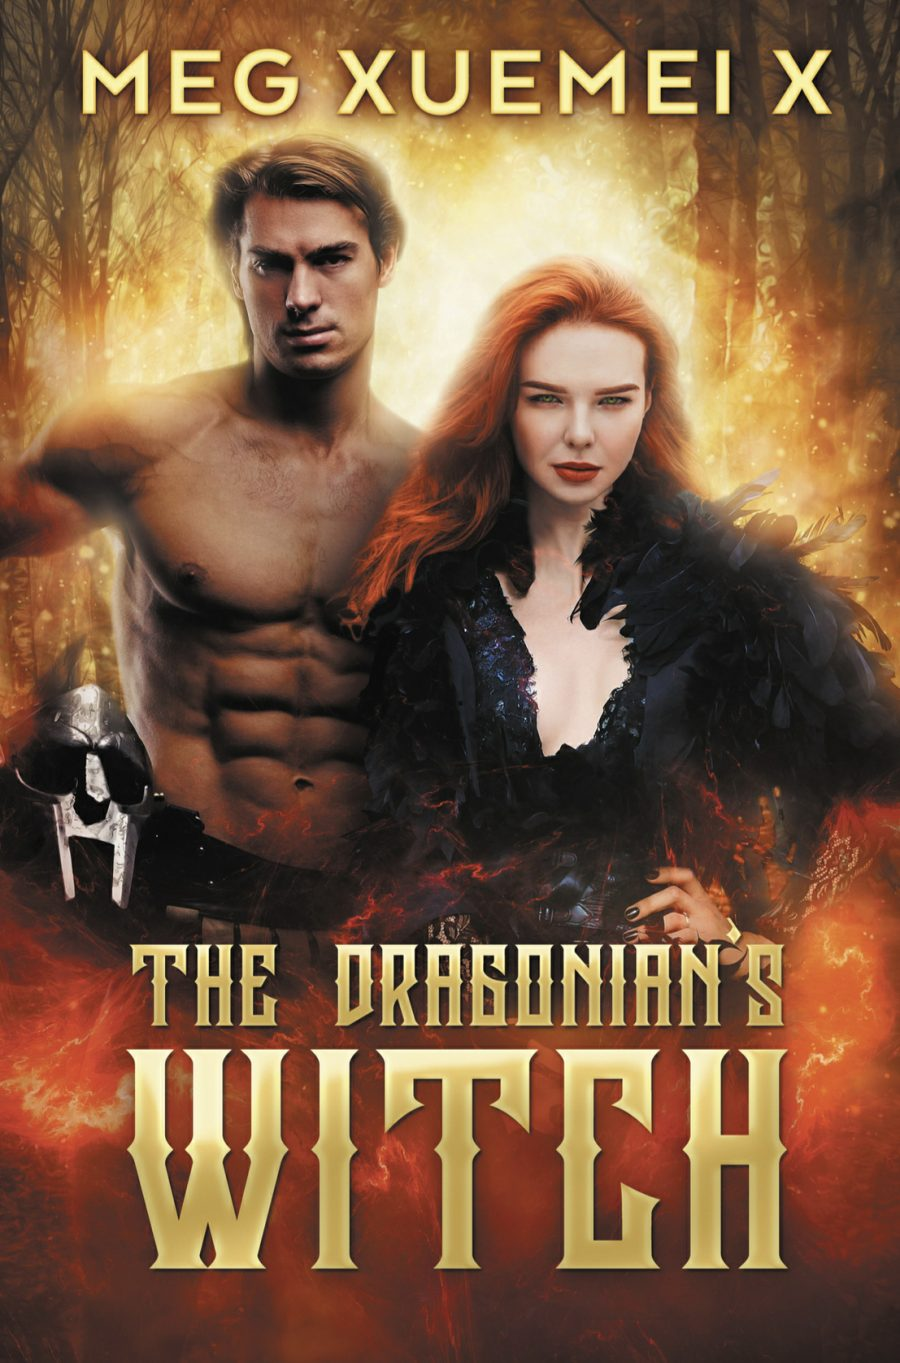 The Dragonian's Witch by Meg Xuemeix - A Book Review #BookReview #Fantasy #Romance #Myth #Angels #Witch #Shifters #2BookSeries #NewToMe